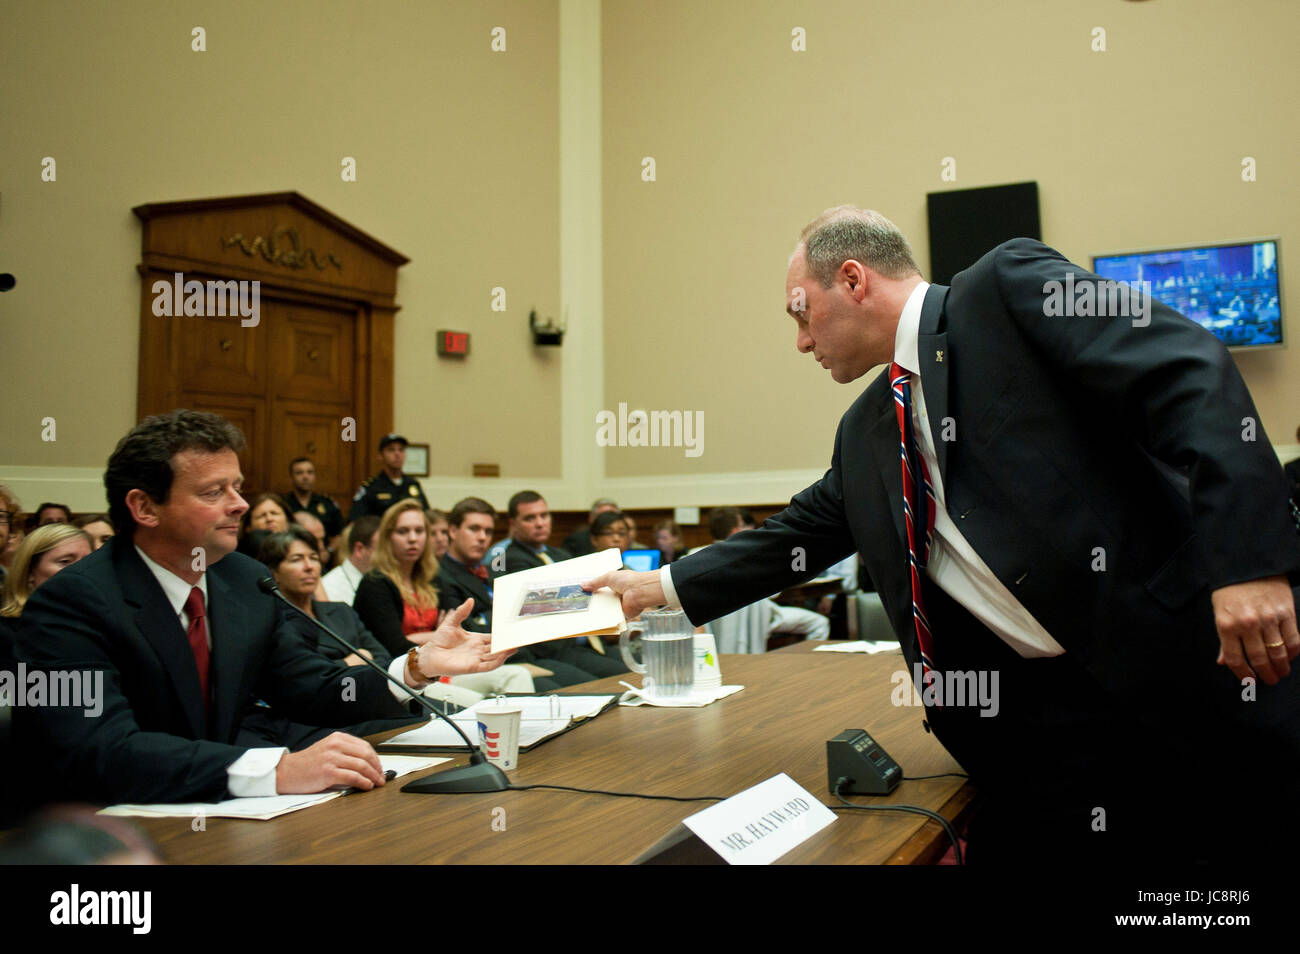 June 17, 2010 - Washington, District of Columbia, U.S., - Rep. STEVE SCALISE gives matierals to Tony Hayward, CEO, - Stock Image